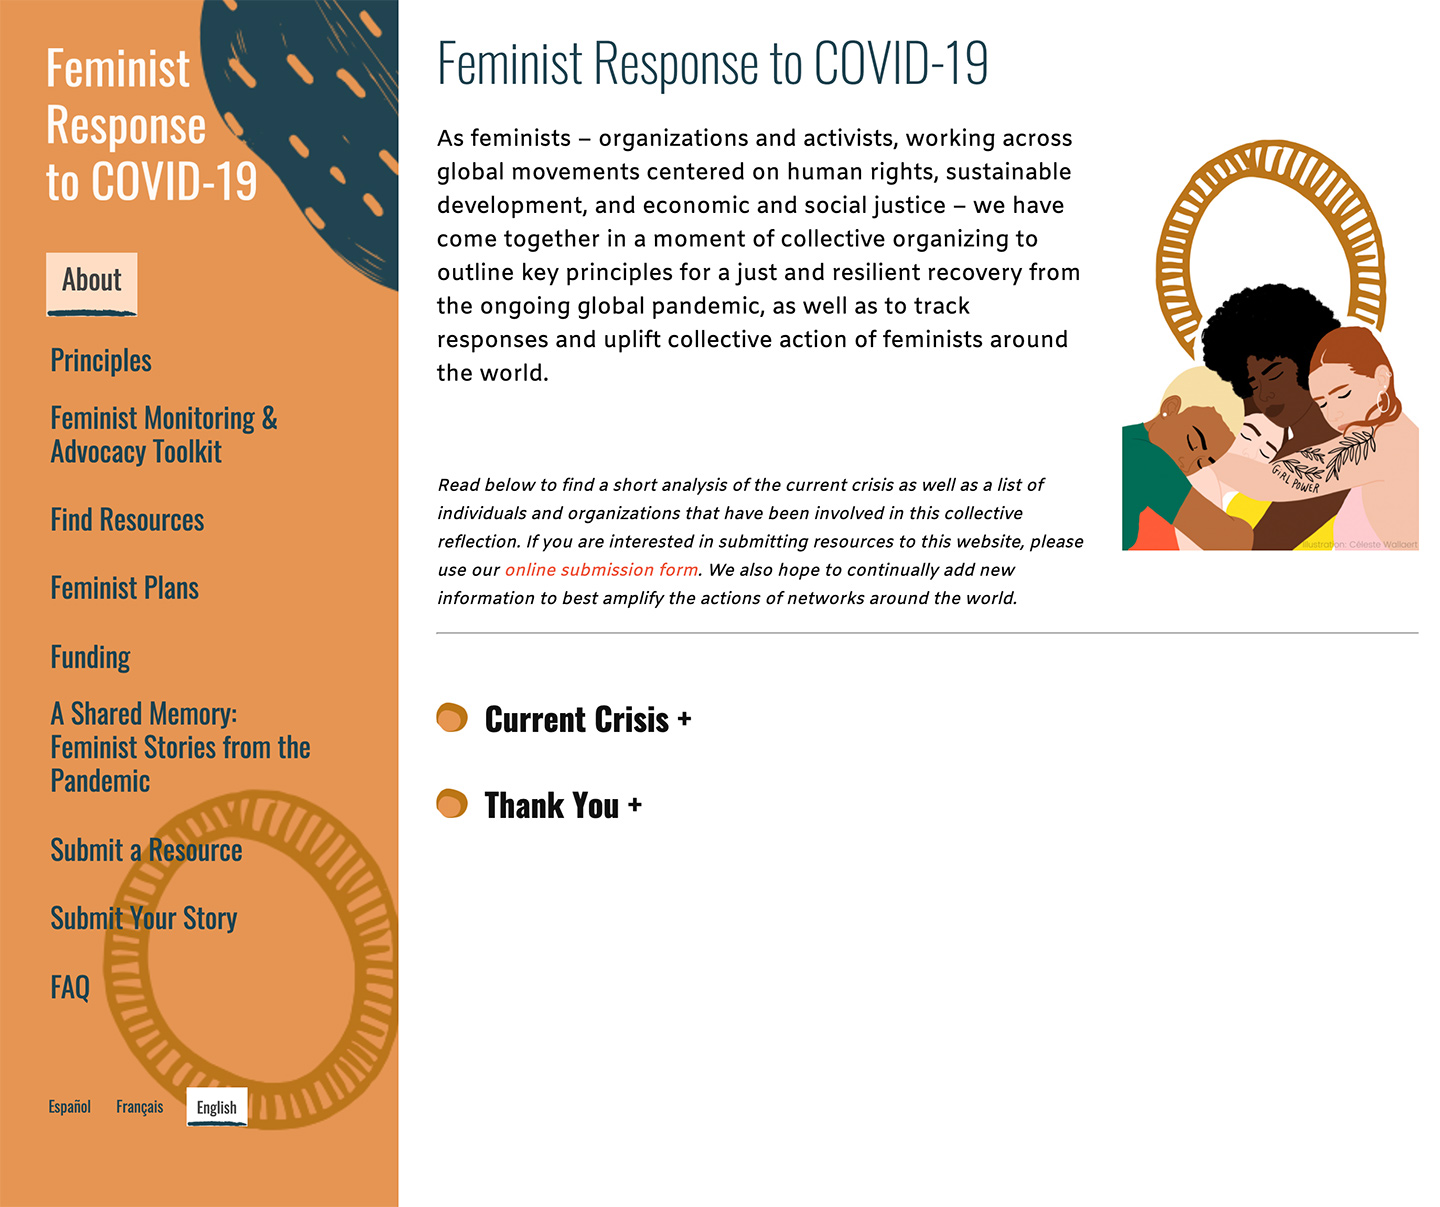 Feminist Response to COVID-19: Feminist Response to Covid-19 - Homepage